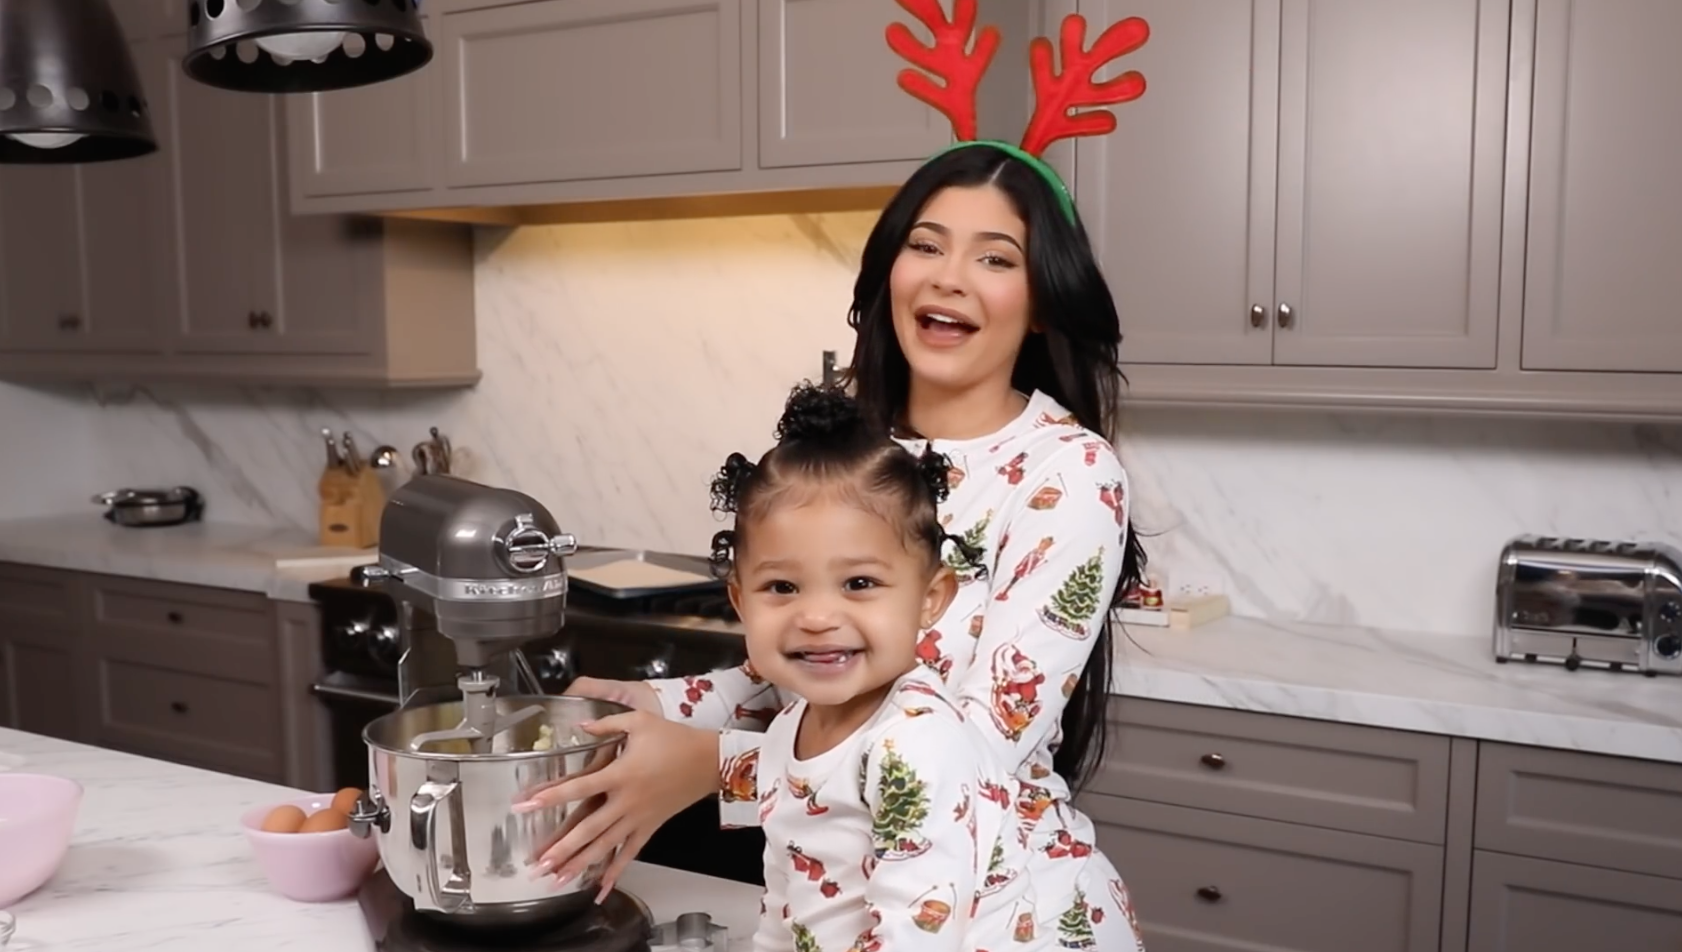 Kylie and her daughter at home